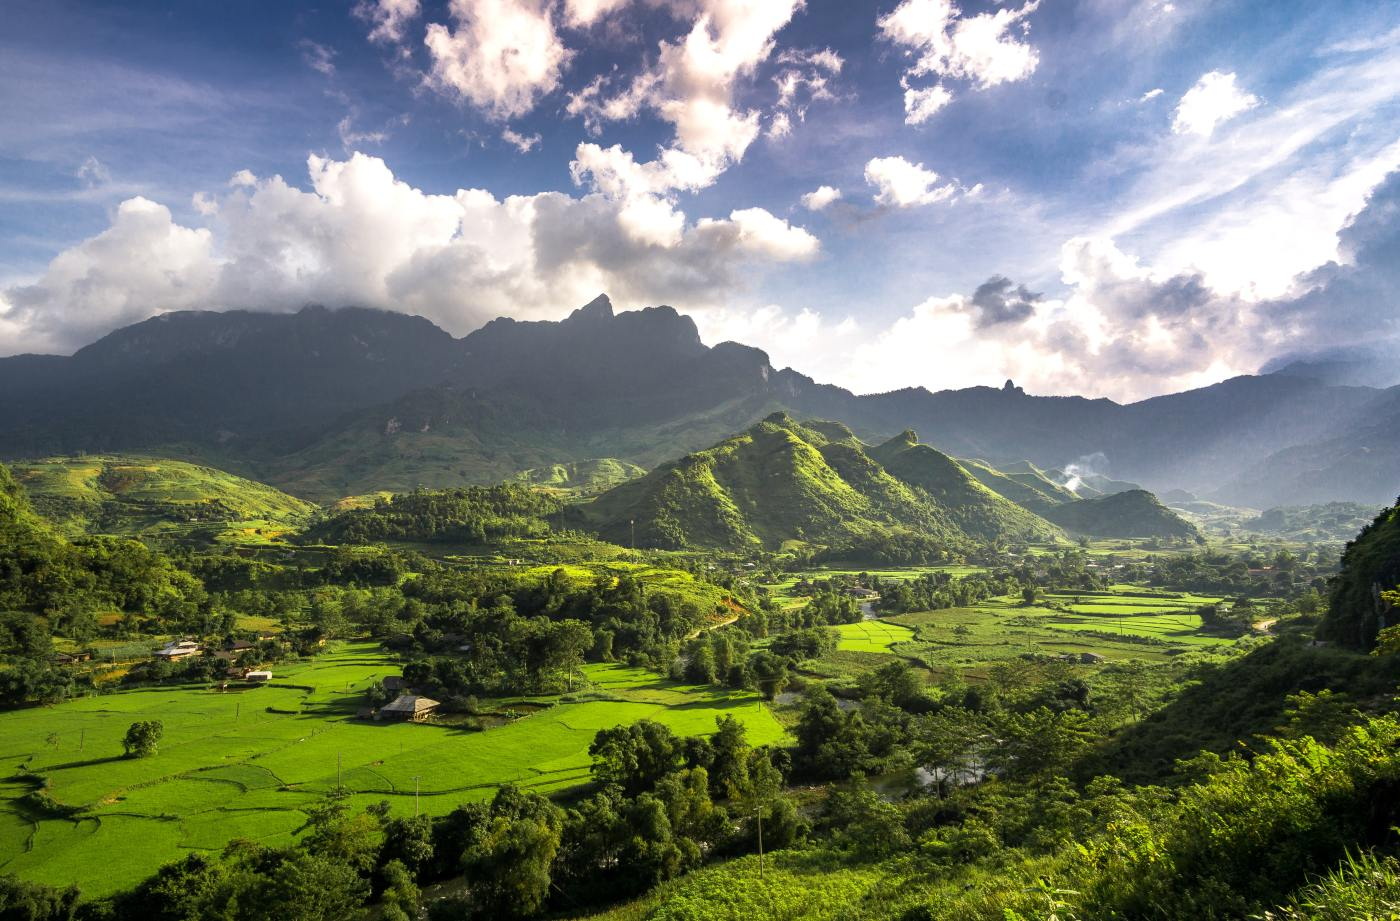 Vibrant fields, mountains, and sparsely clouded, illuminating skies.